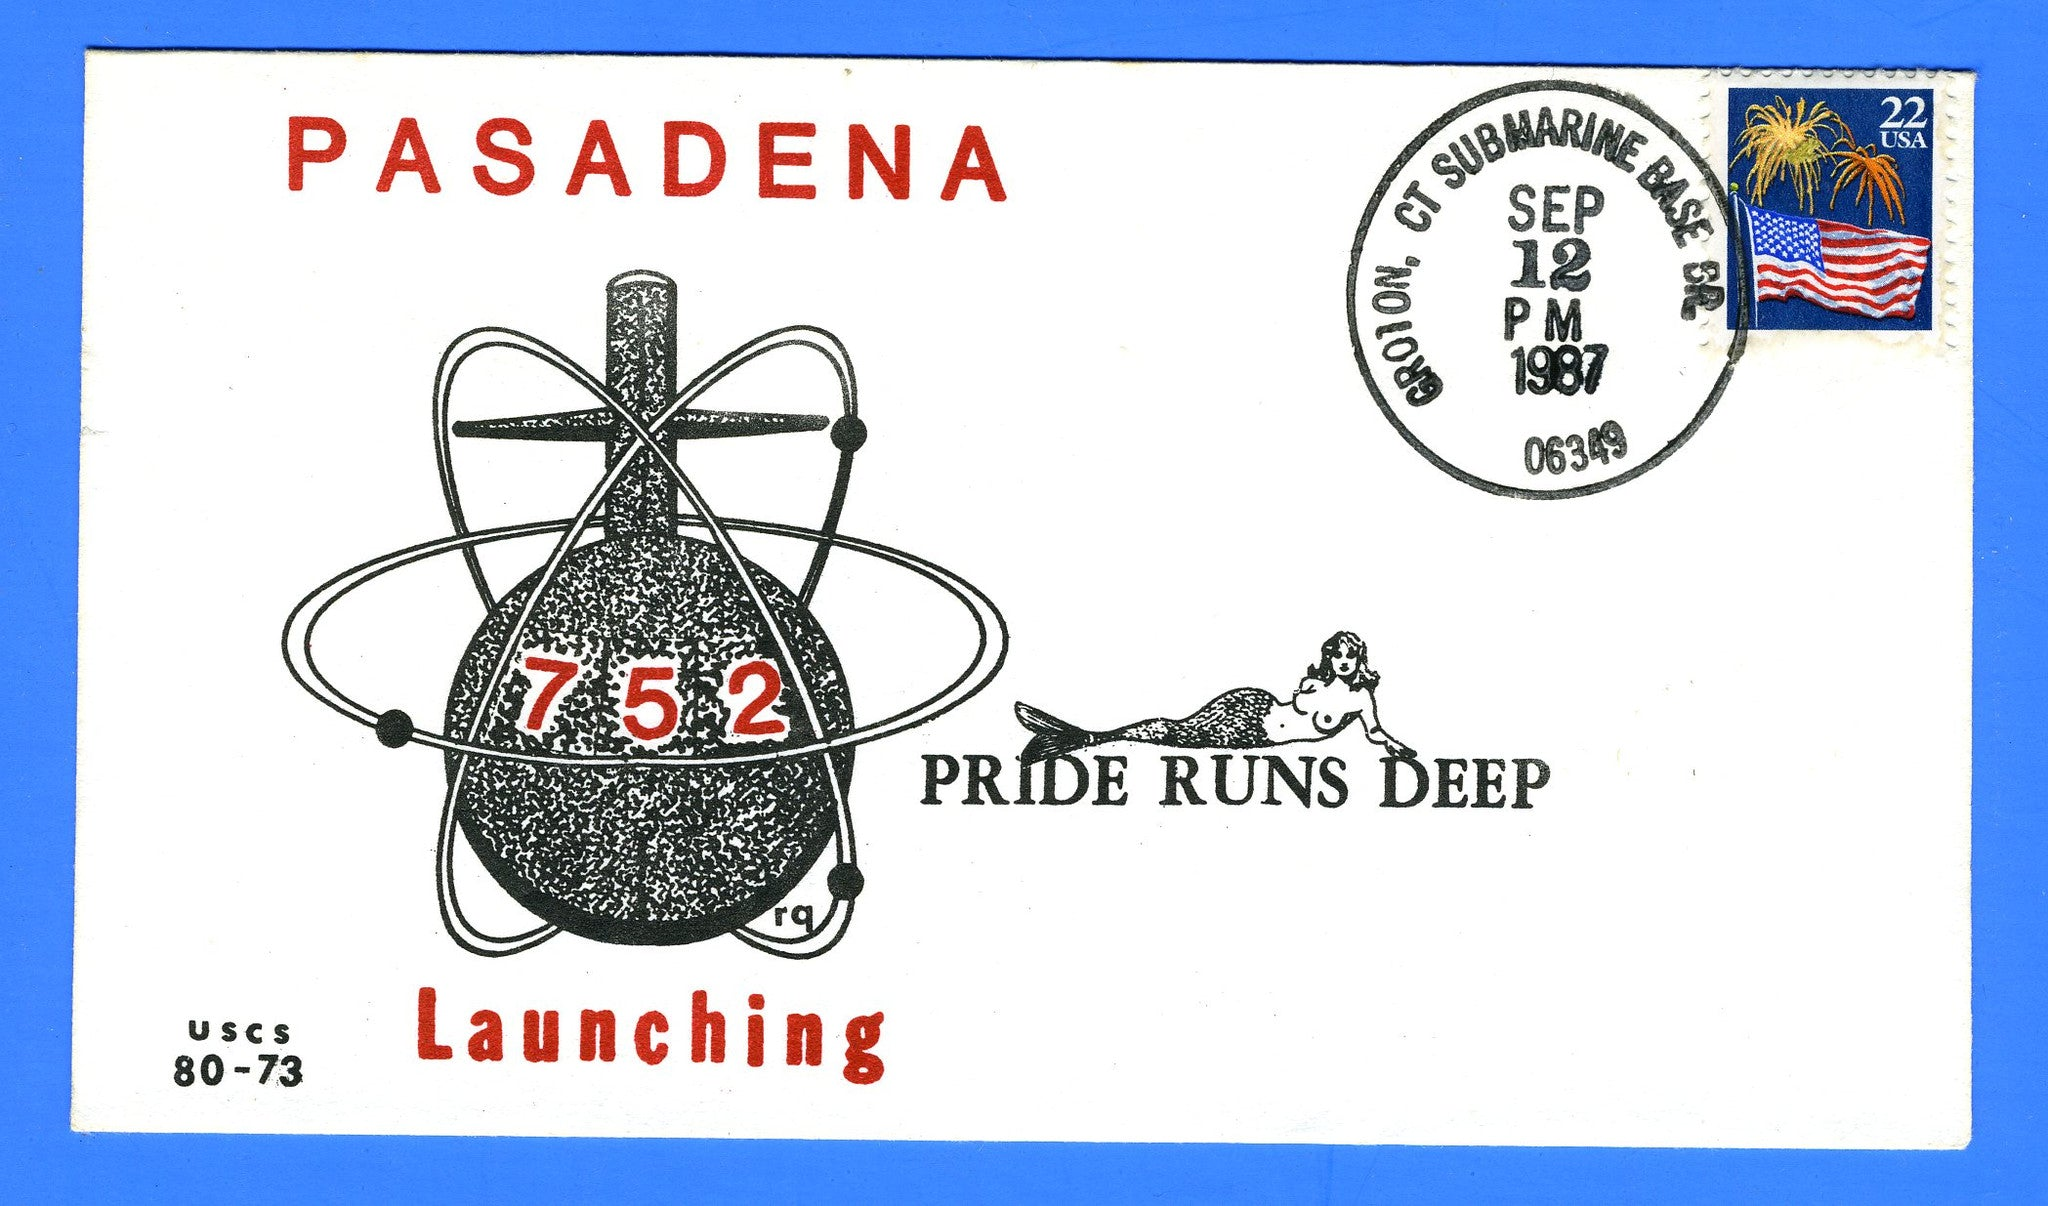 USS Pasadena SSN-752 Launching September 12, 1987